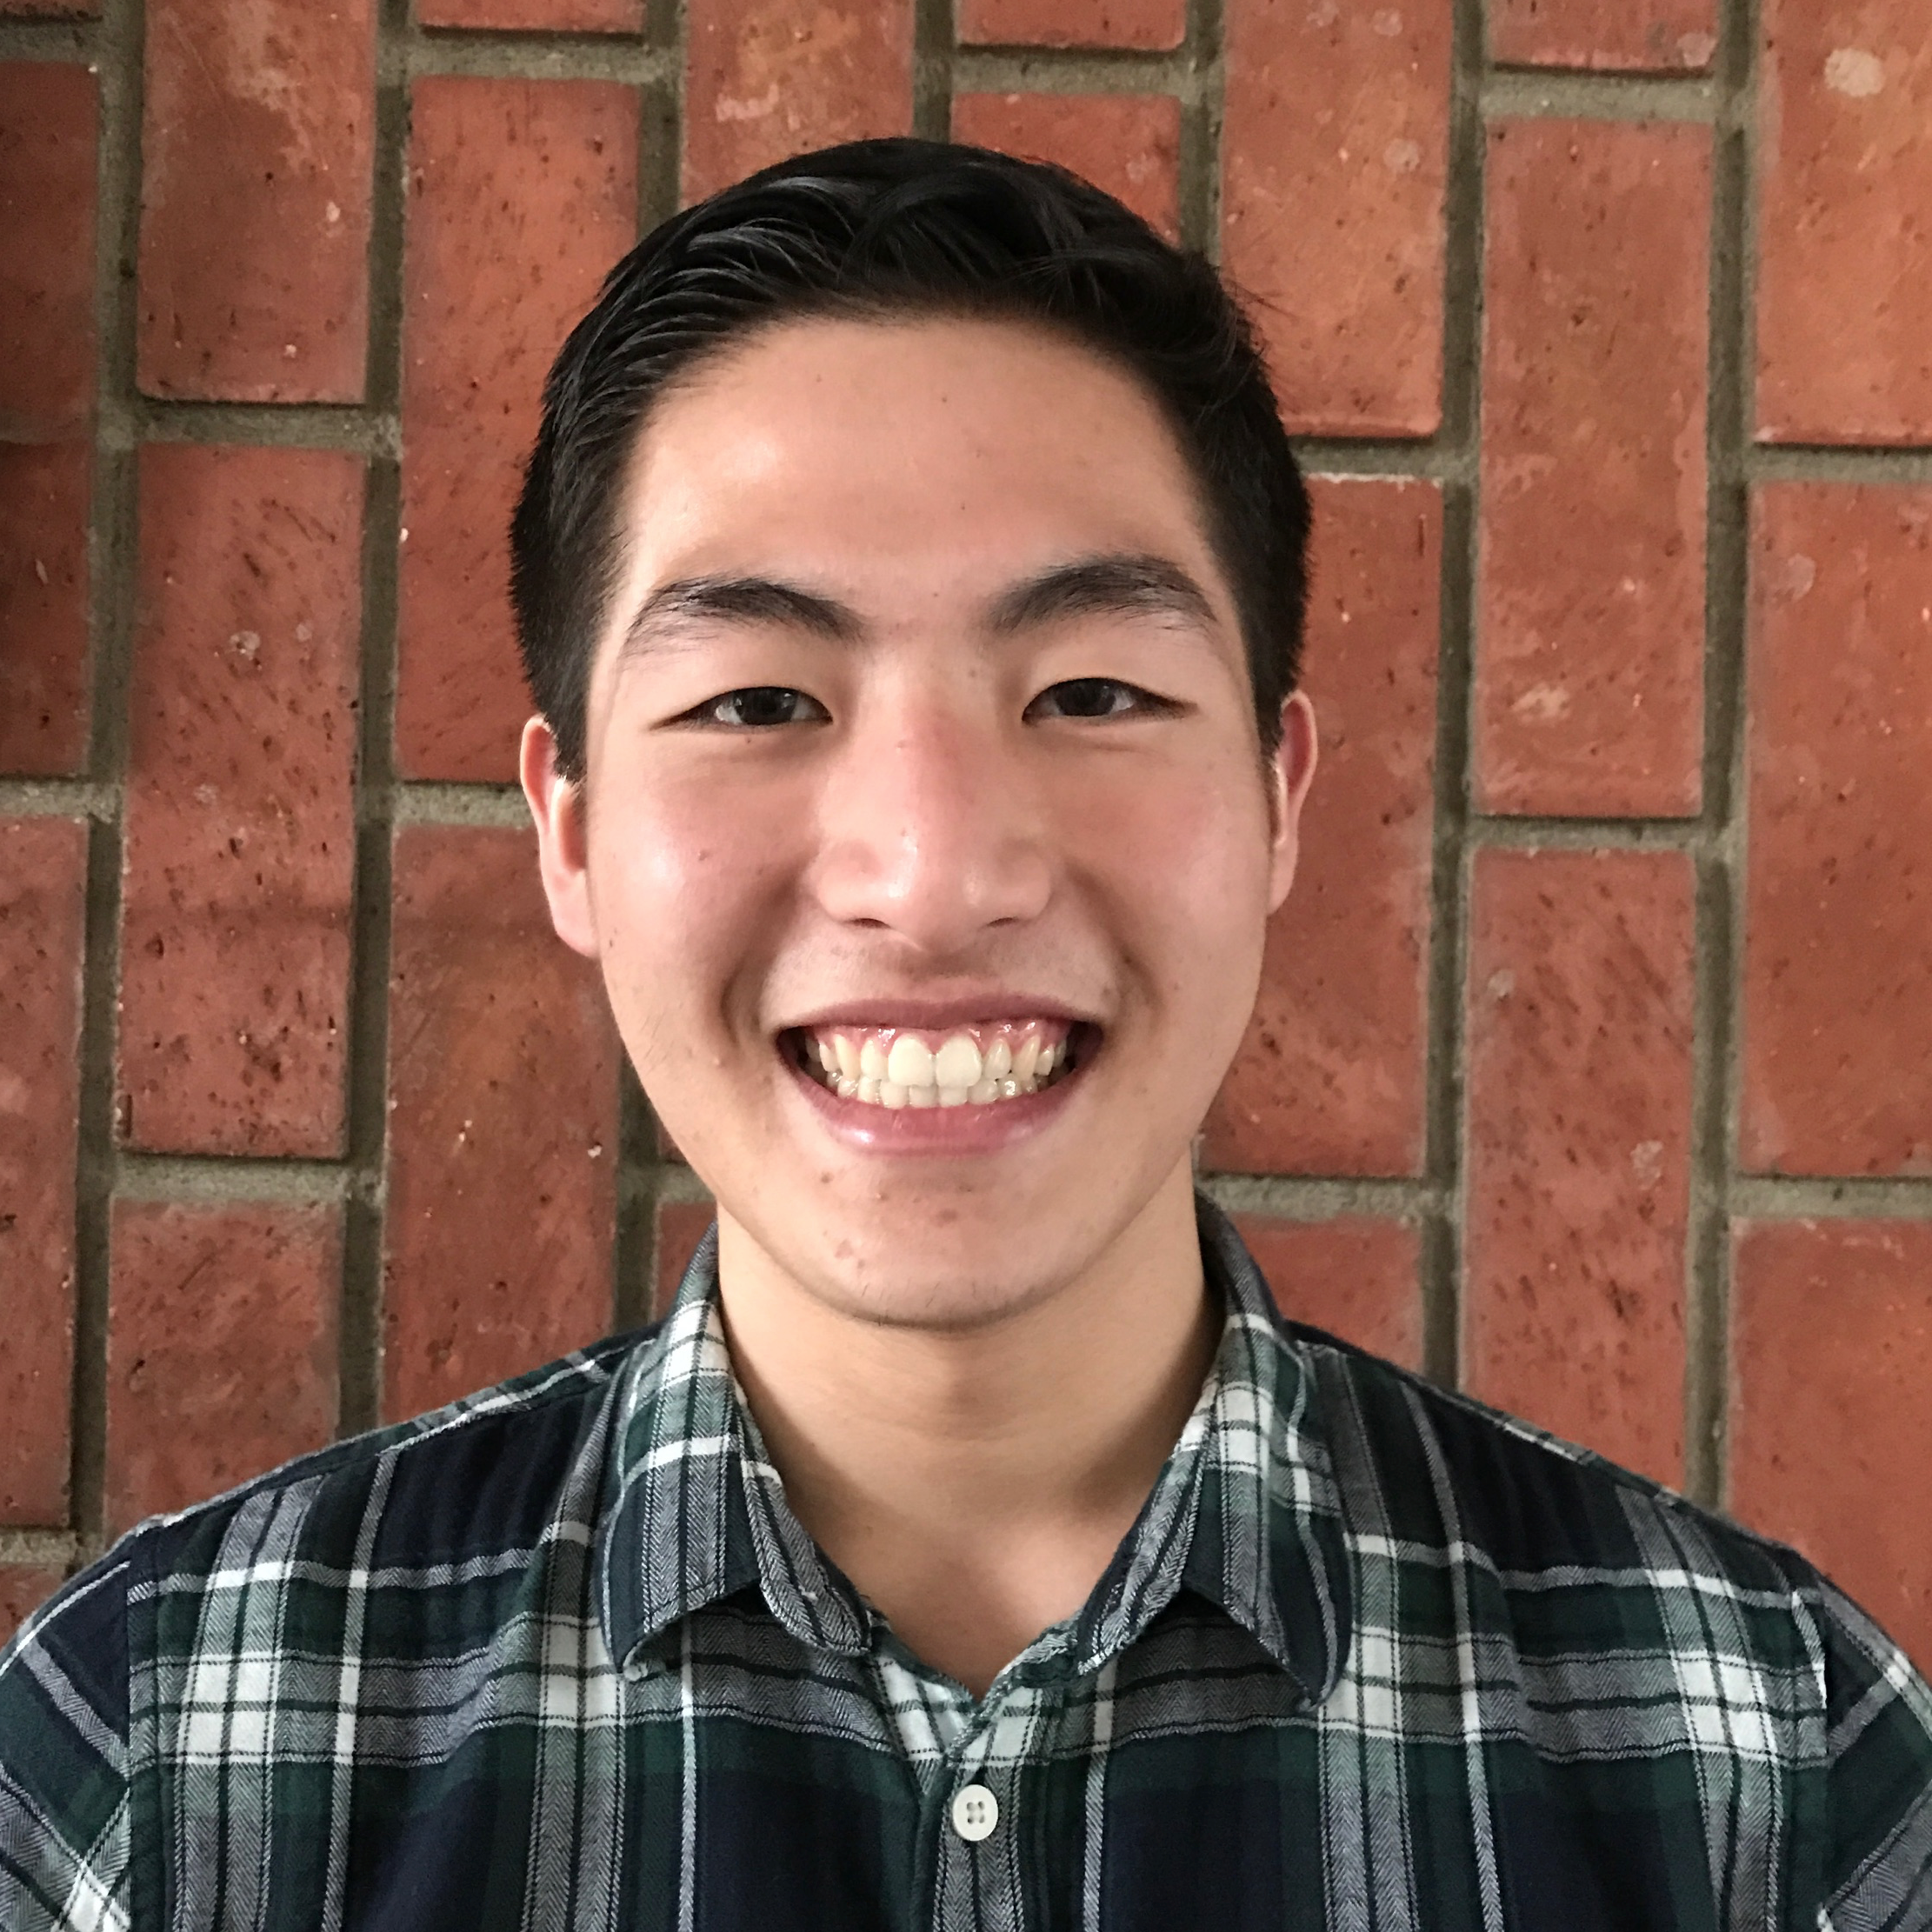 William Huang - Marketing + Communications   William is a freshman currently studying Business and Applied Psychology at New York University. He is a singer in NYU's Jazz Choir and a student entrepreneur hoping to enact positive change in his community. Currently, he is part of the marketing team for TigerLaunch in the Northeastern region, helping to advertise and promote the competition.